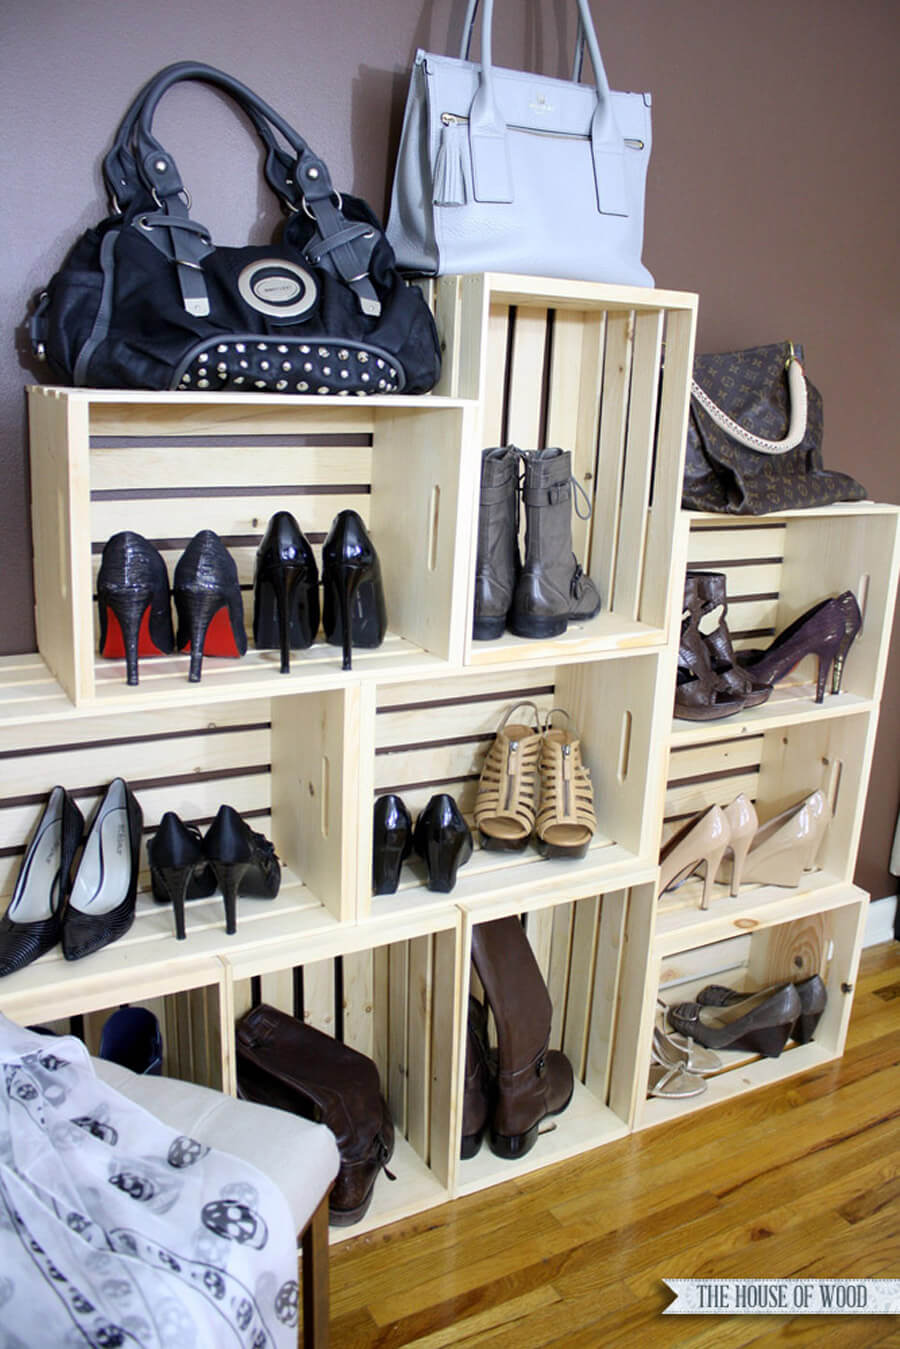 Customized Wooden Shoe Rack Built from Scratch